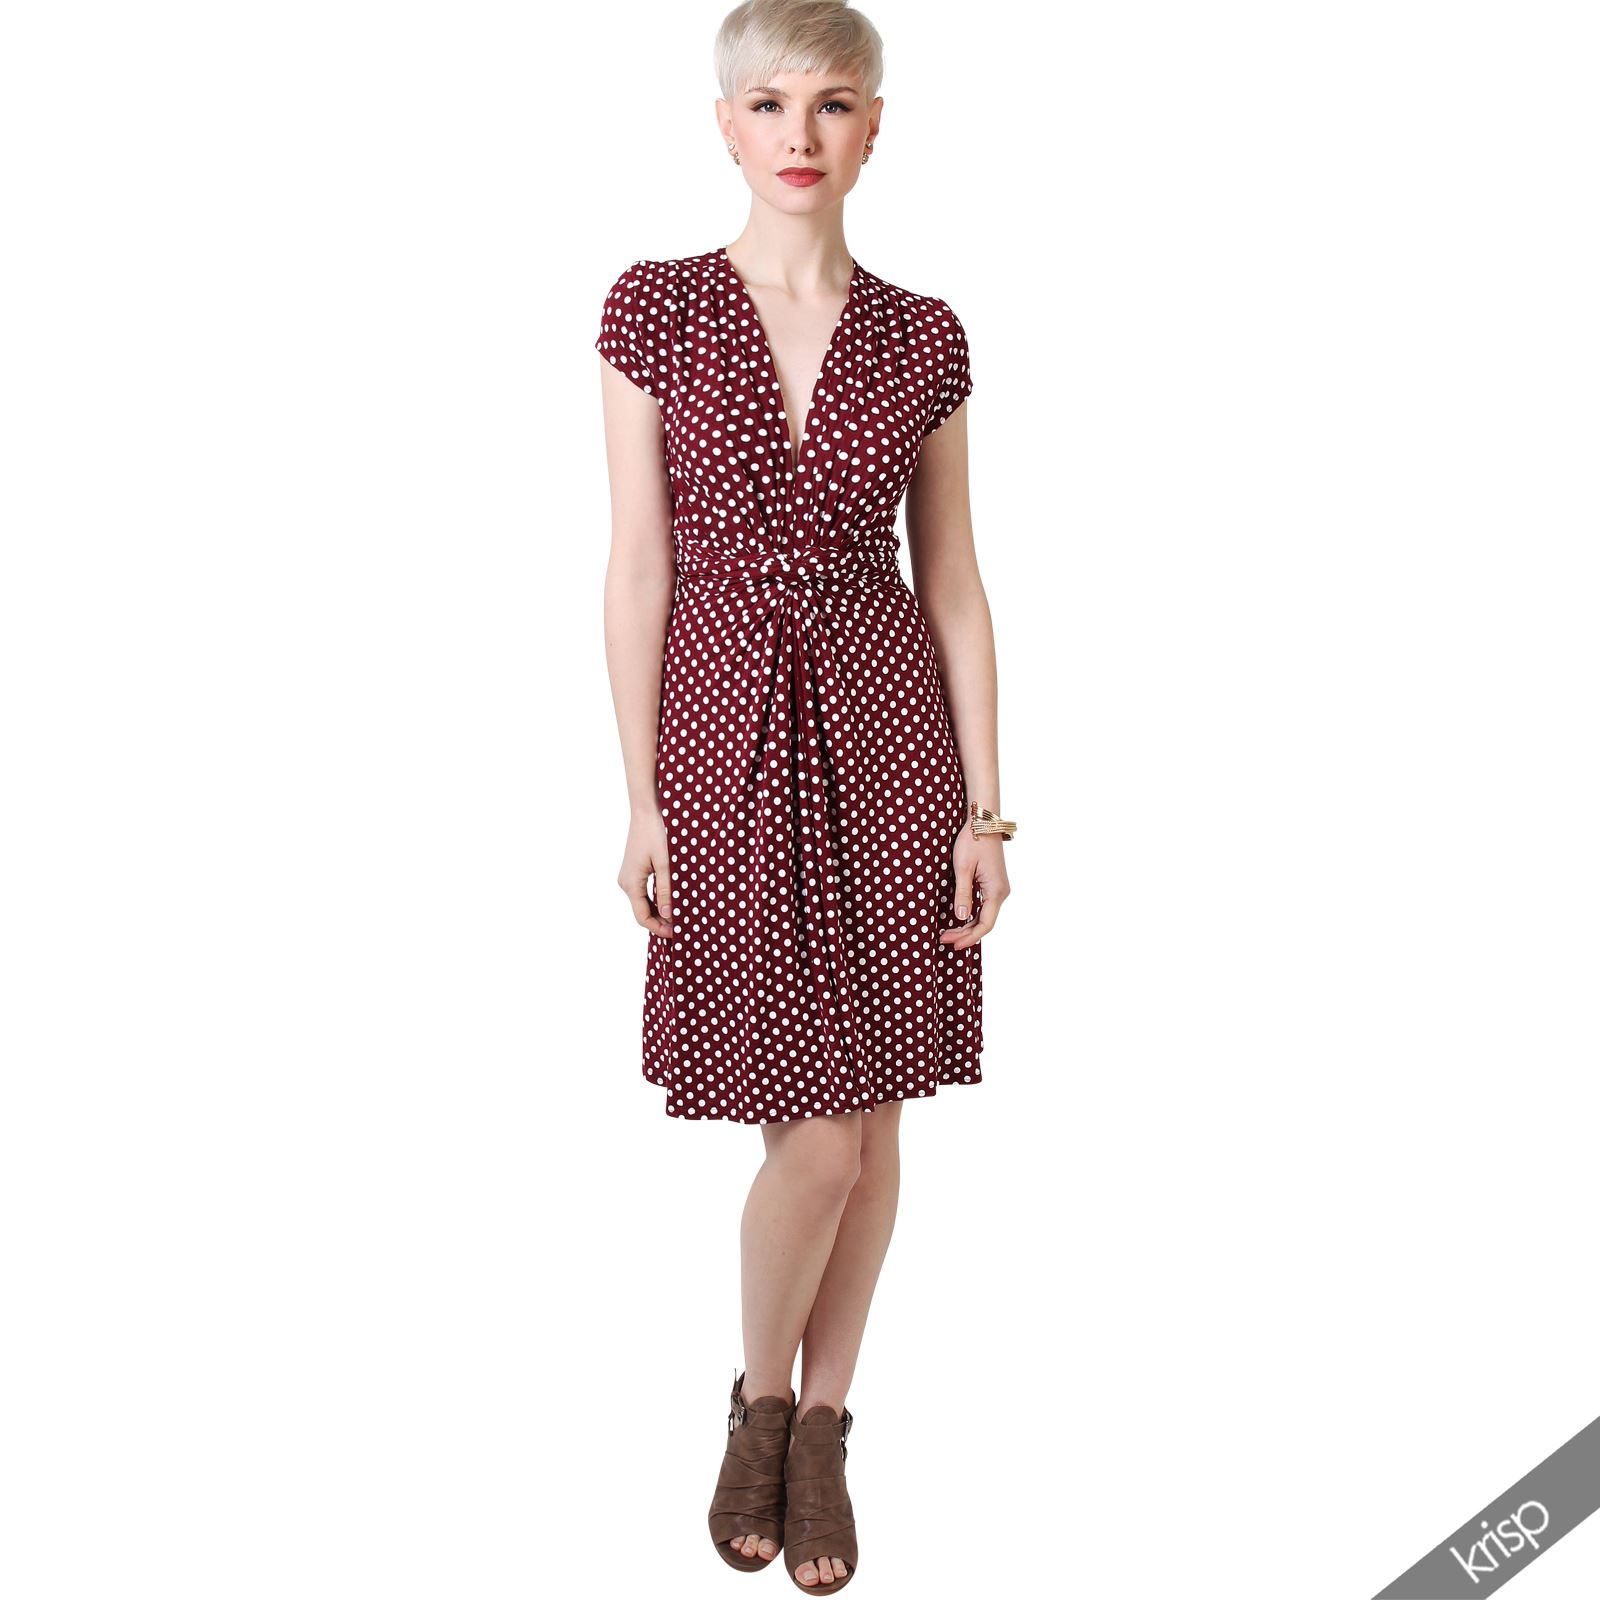 Womens-Polka-Dot-Dress-Pleated-Skirt-Wrap-Front-Mini-V-Neck-Top-Swing thumbnail 45